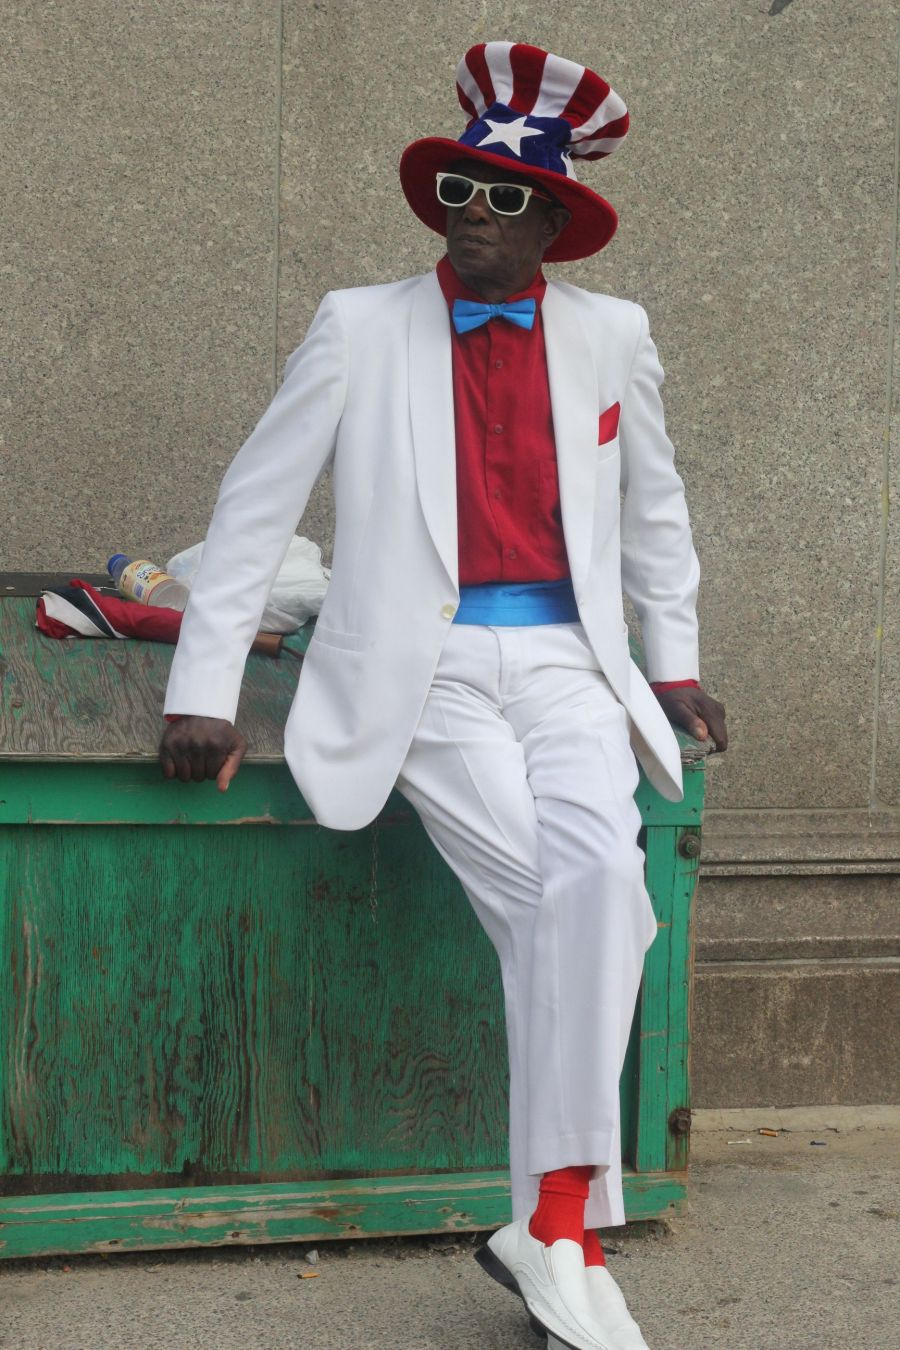 boston park street man in red white blue suit july 4th